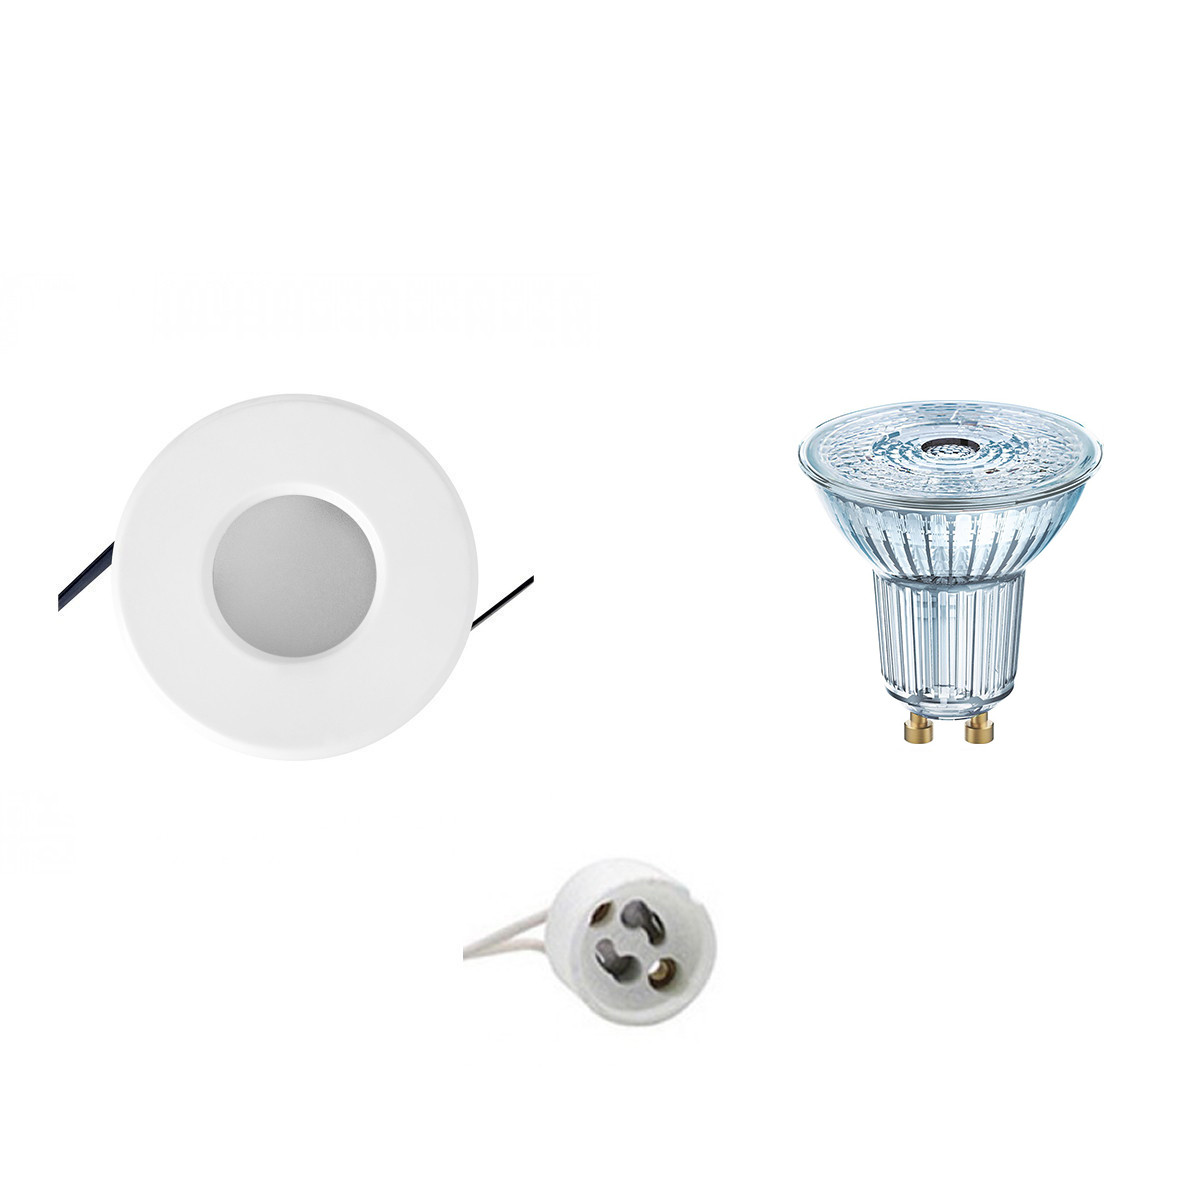 OSRAM - LED Spot Set - Parathom PAR16 940 36D - Aigi - GU10 Fitting - Waterdicht IP65 - Dimbaar - In